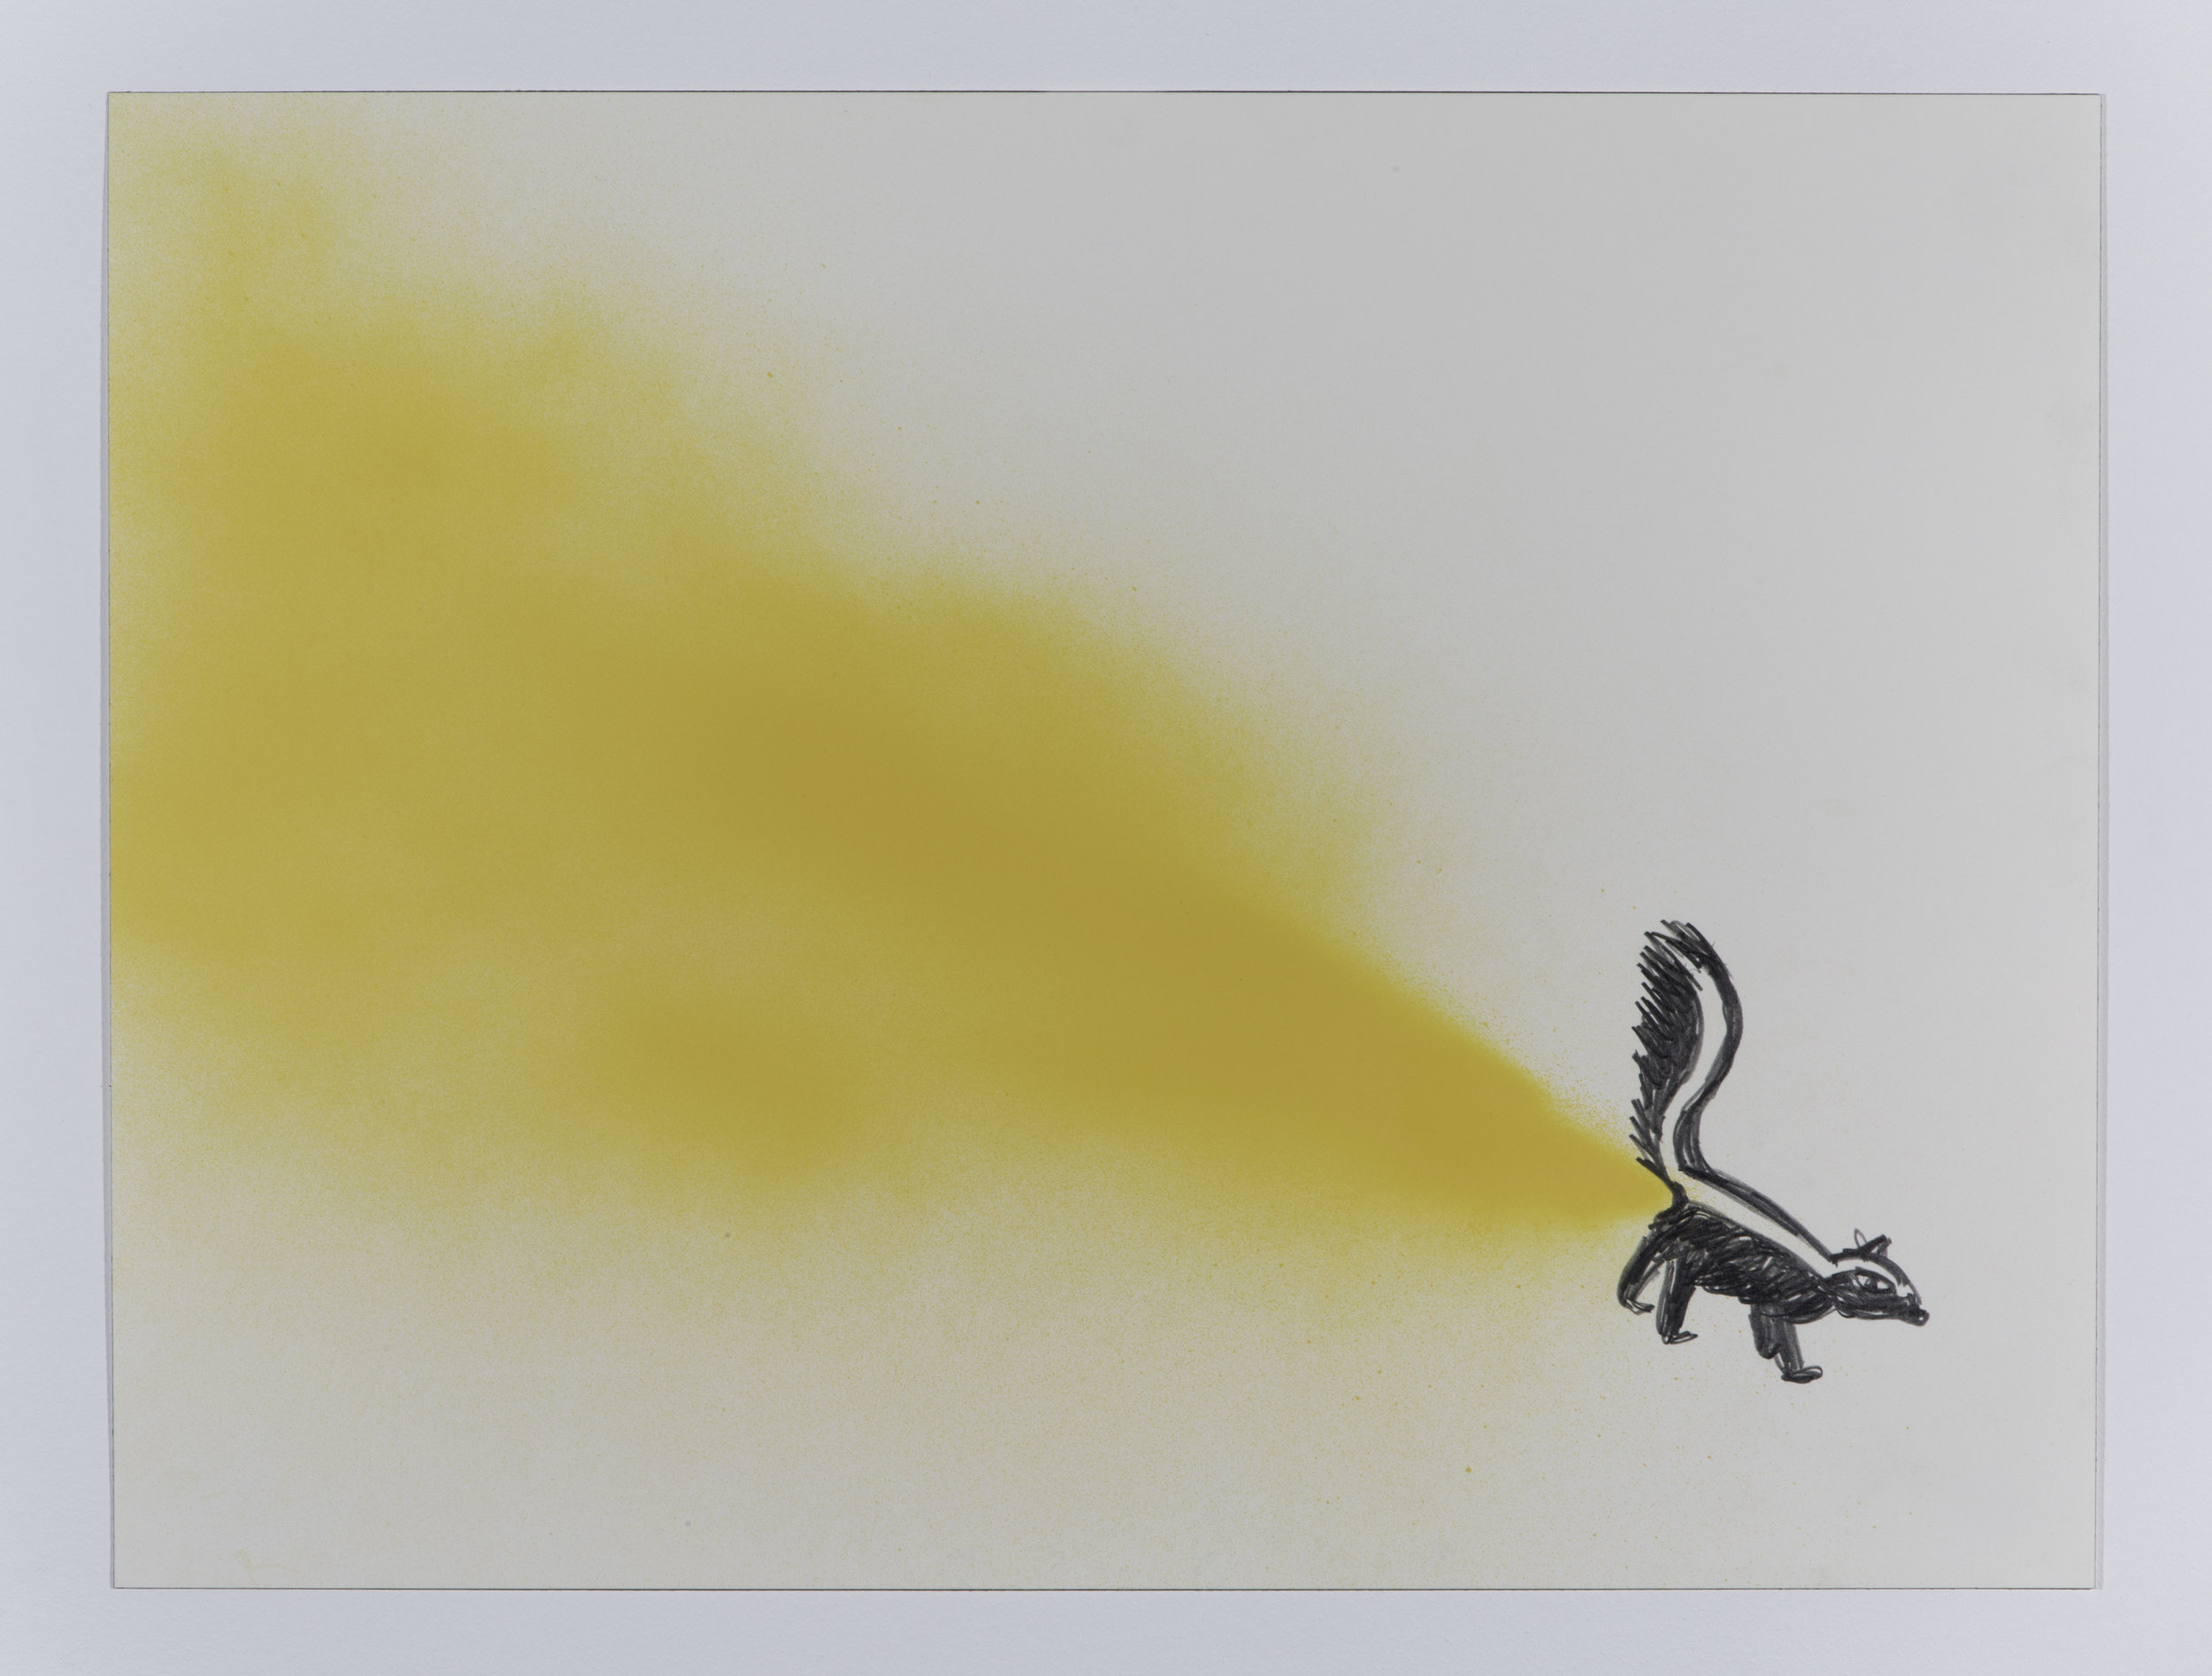 Lil' Stinker, 2014 spray paint and pencil on paper 45,7 x 61 cm - 18 x 24 inches